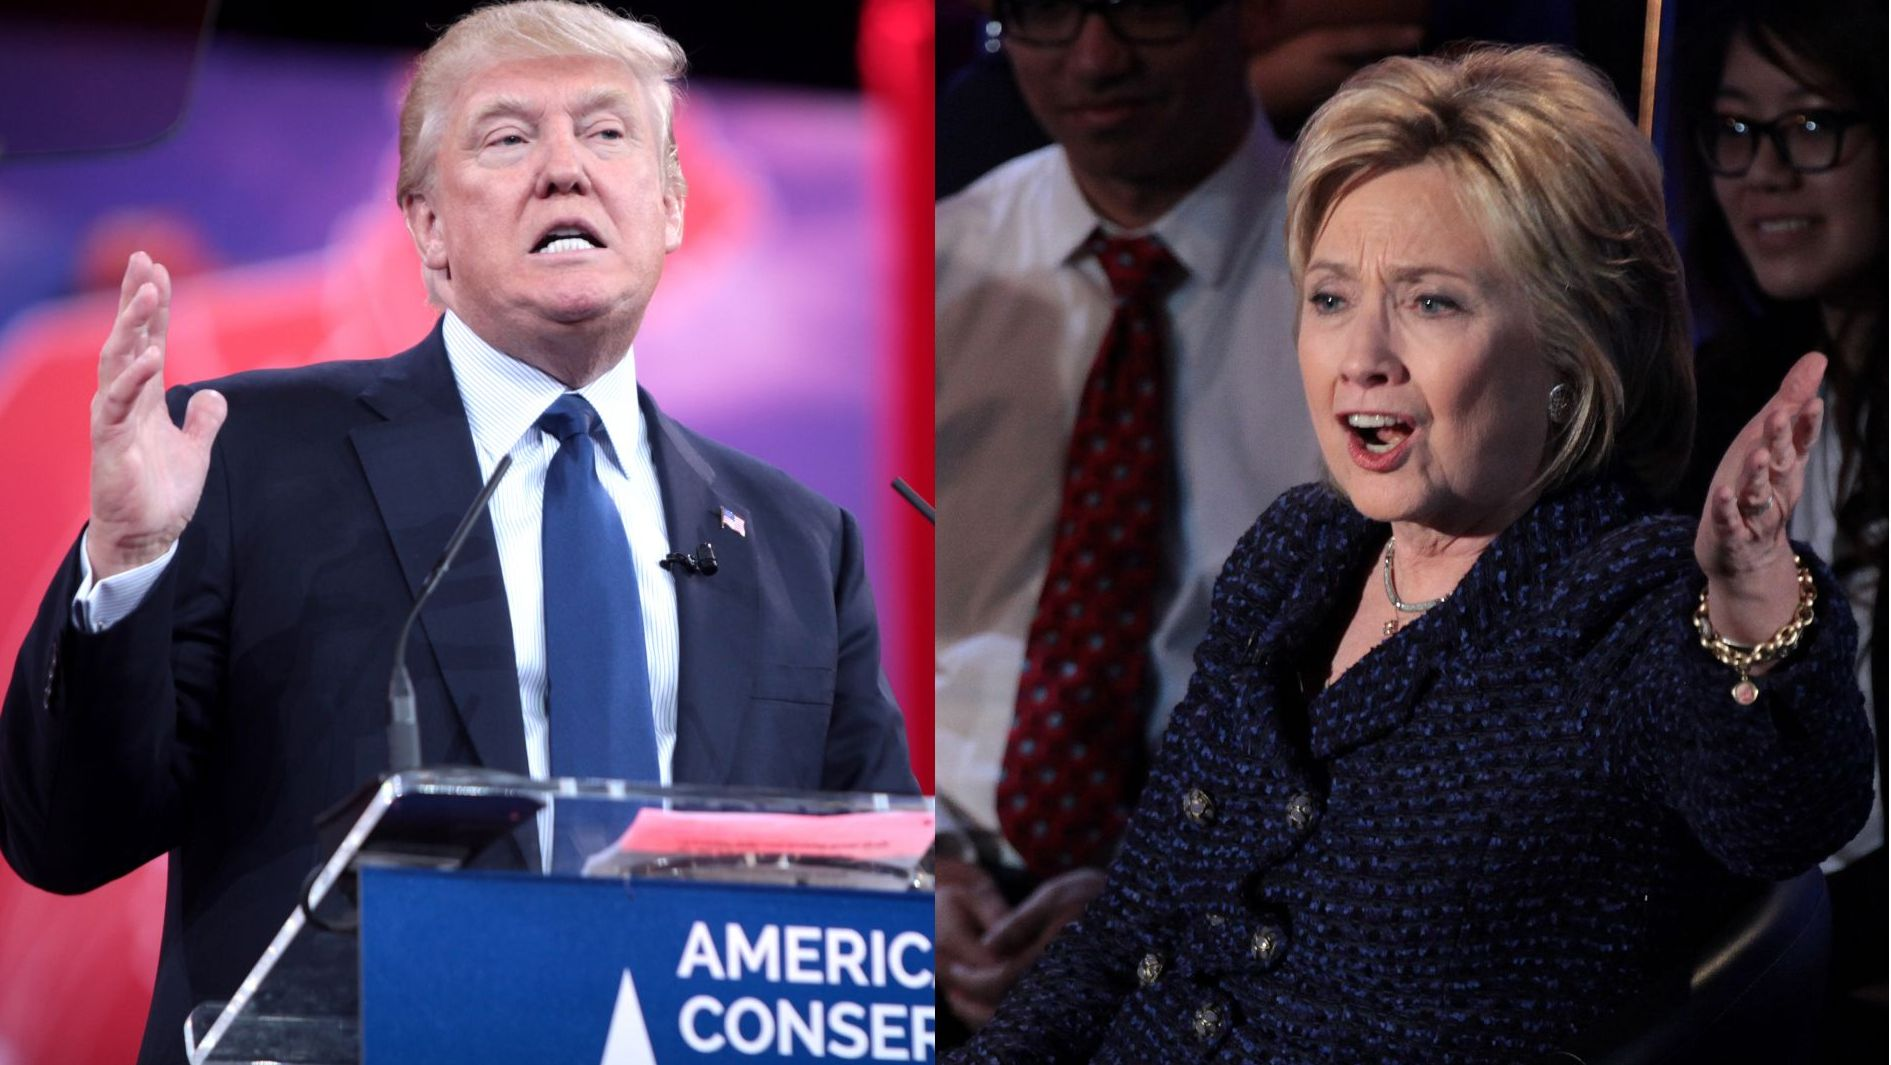 Donald Trump (left) and Hillary Clinton (right) during the 2016 election campaign